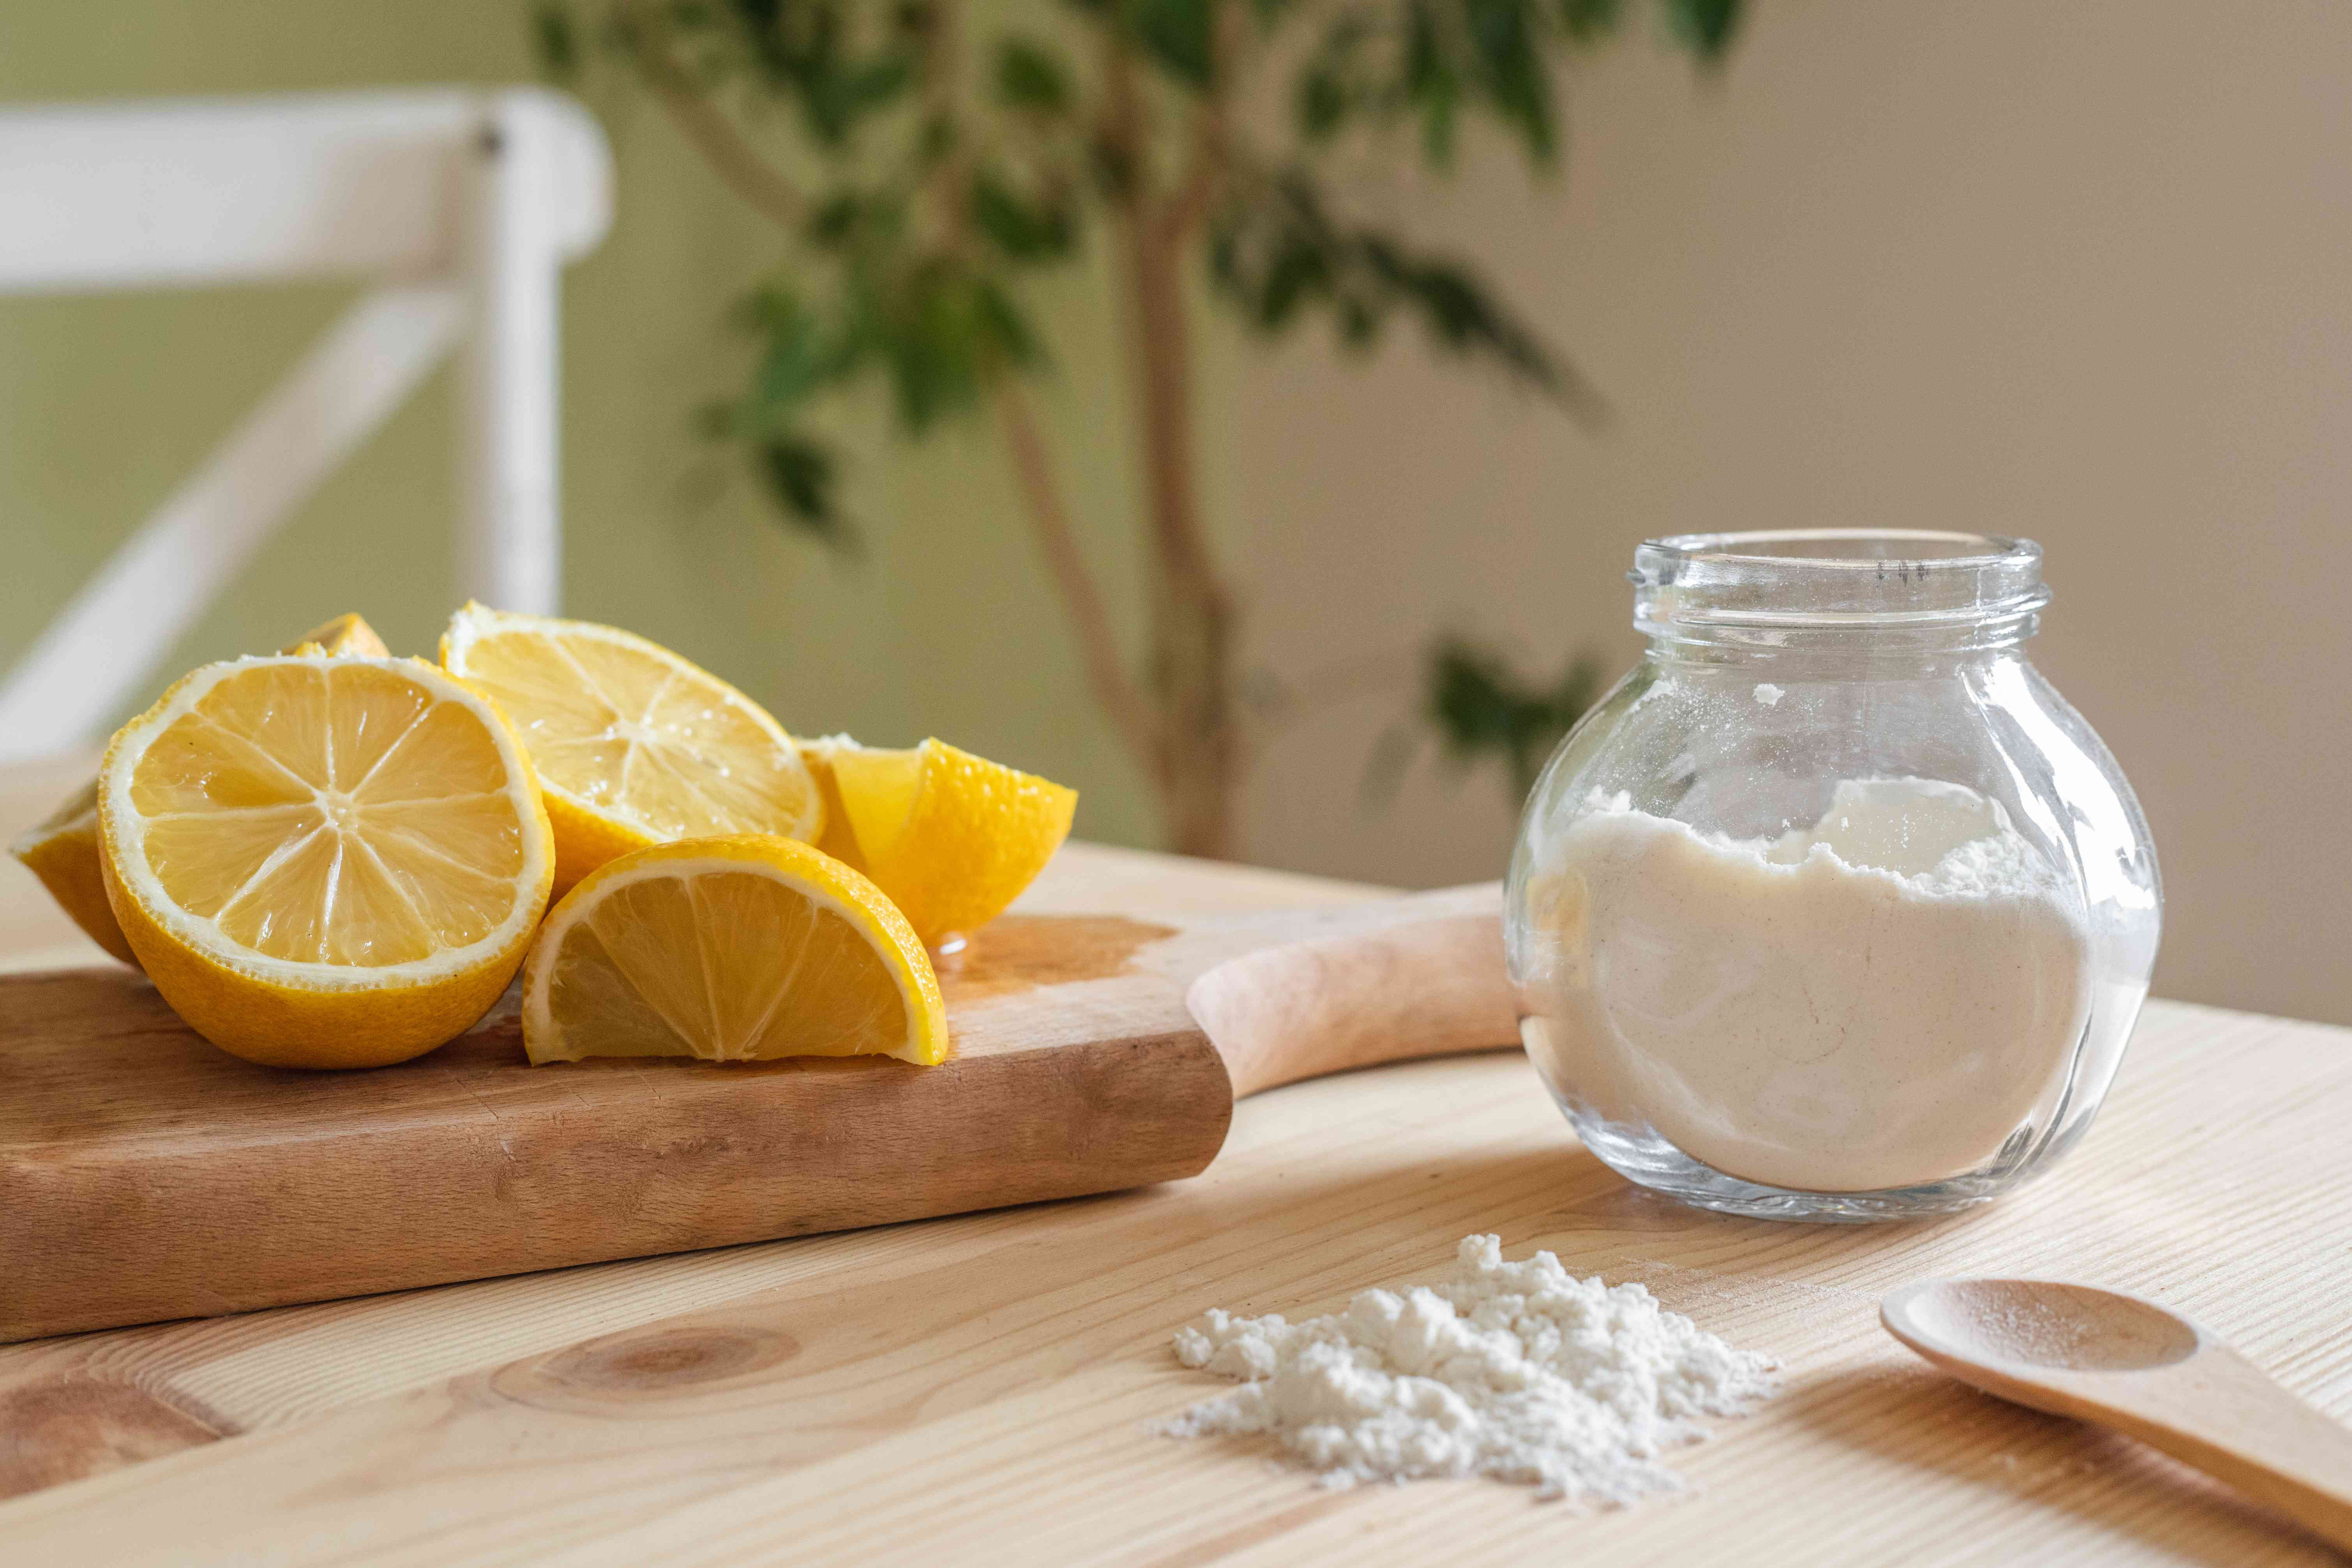 spilled stevia sugar from glass jar on wooden table next to cut lemons